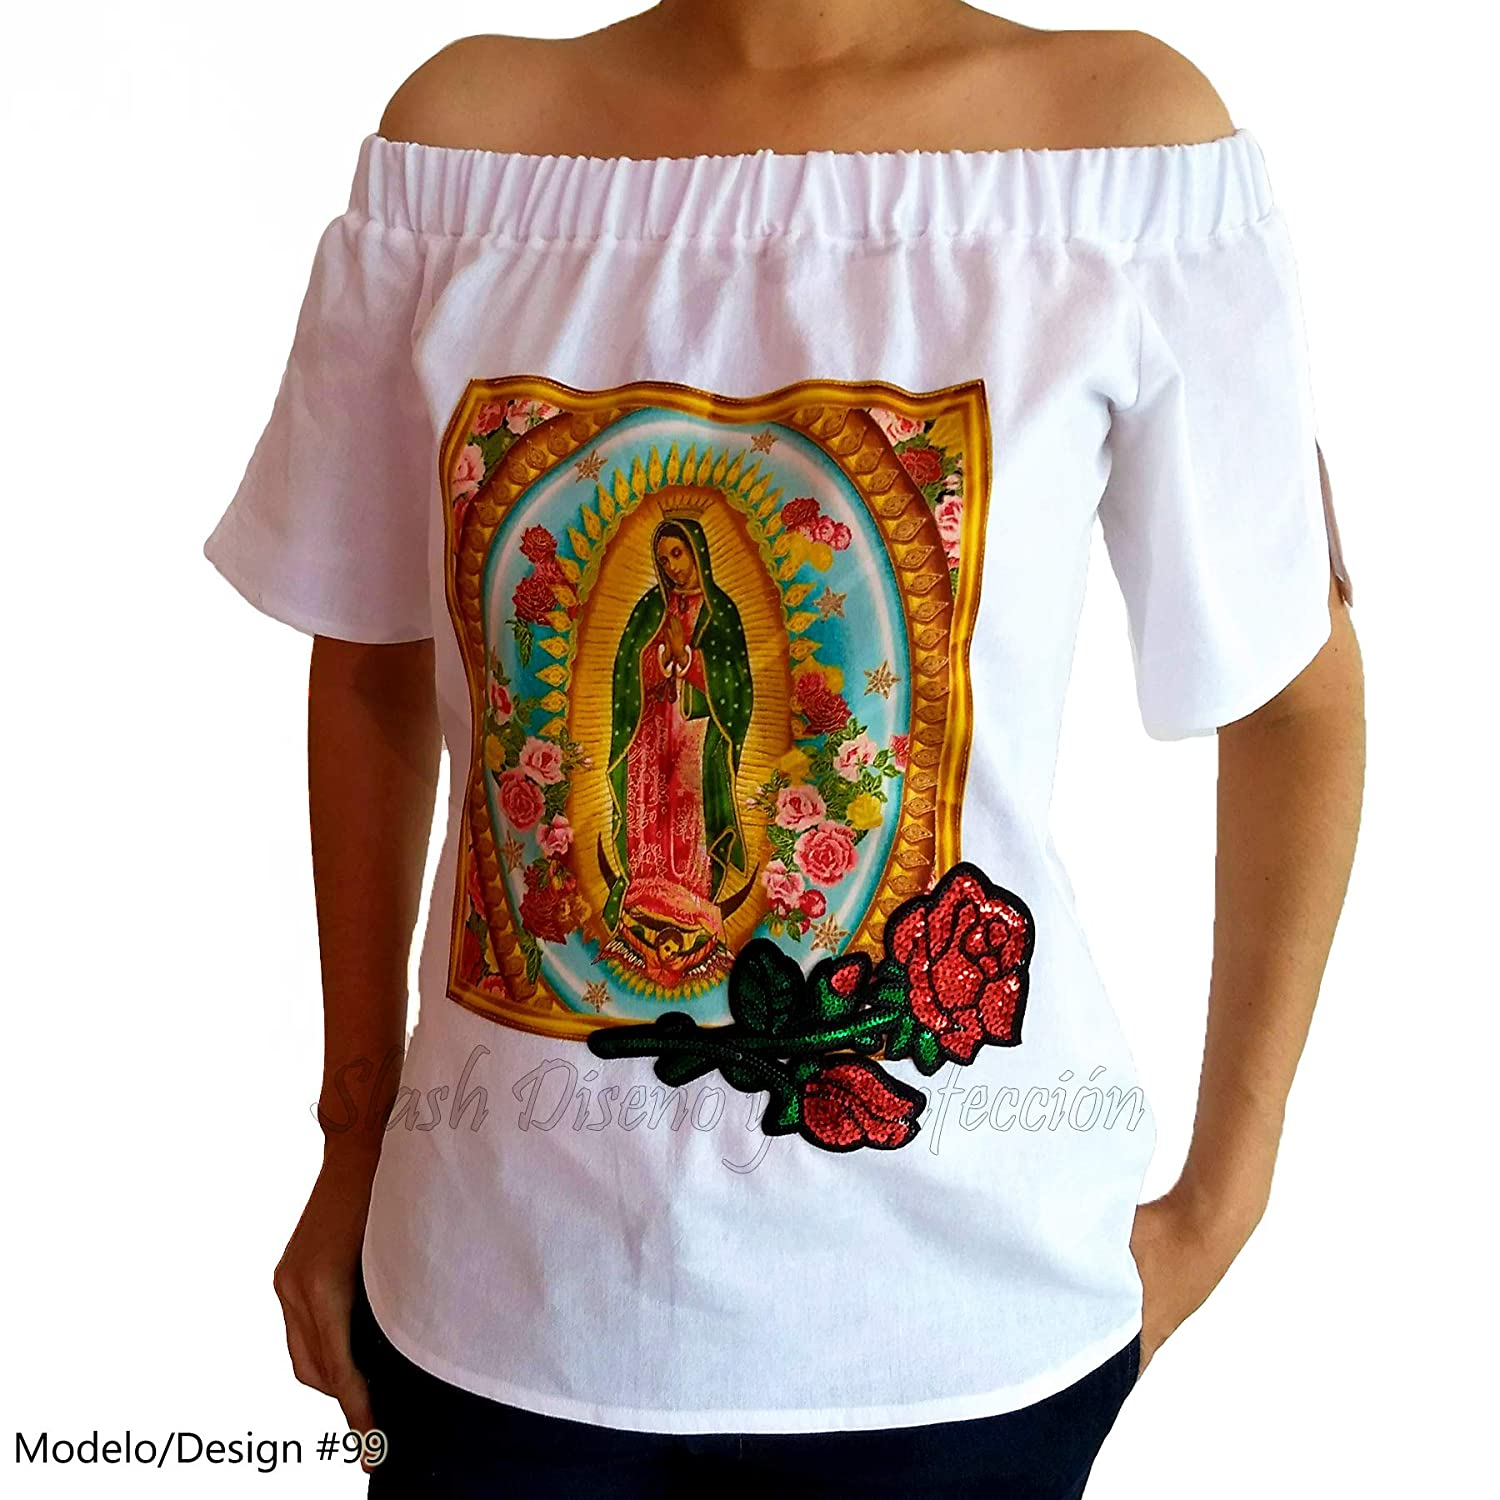 Guadalupana Blouse Raw Coarse Cotton Fabric Manta Virgin of Guadalupe Virgin Maria Mexican Custom Tailored Plus Size Handmade